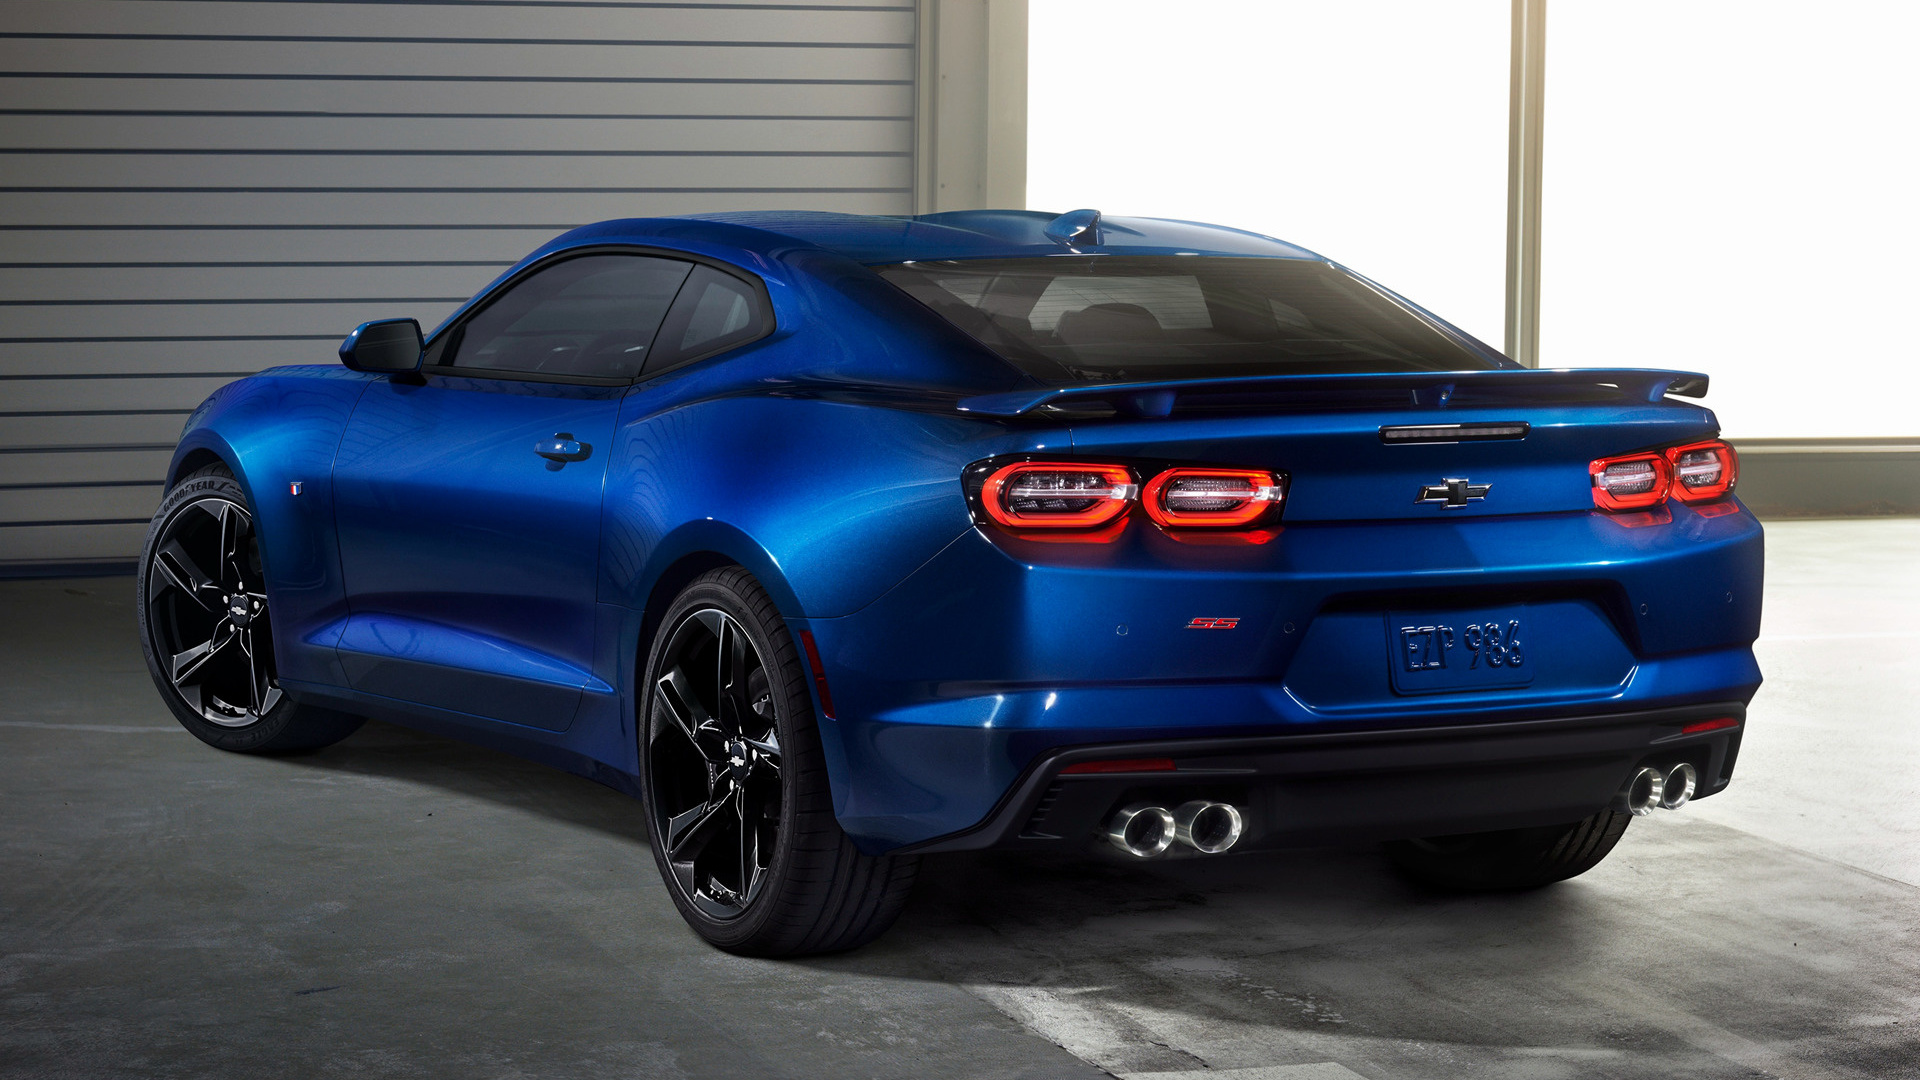 2019 Chevrolet Camaro Ss Wallpapers And Hd Images Car